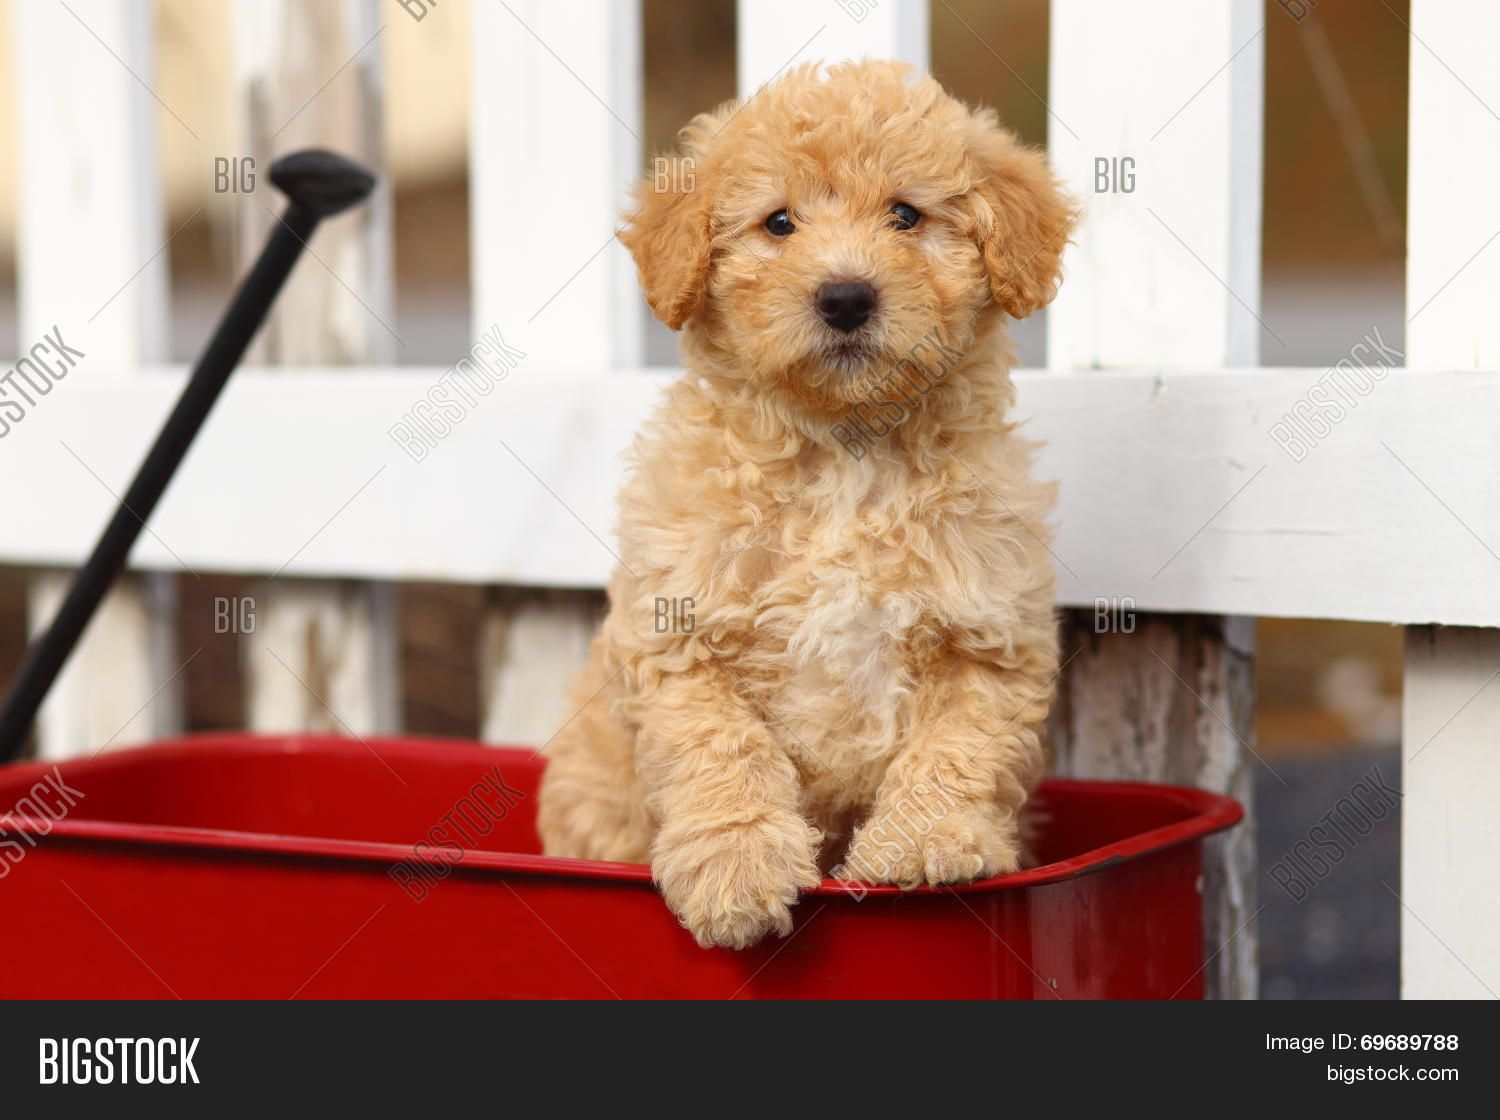 An Adorable Labradoodle Puppy Sits In A Bright Red Wagon In Front Of A White Wooden Fence Labradoodle Puppies For Sale Labradoodle Puppy Mini Labradoodle Puppy